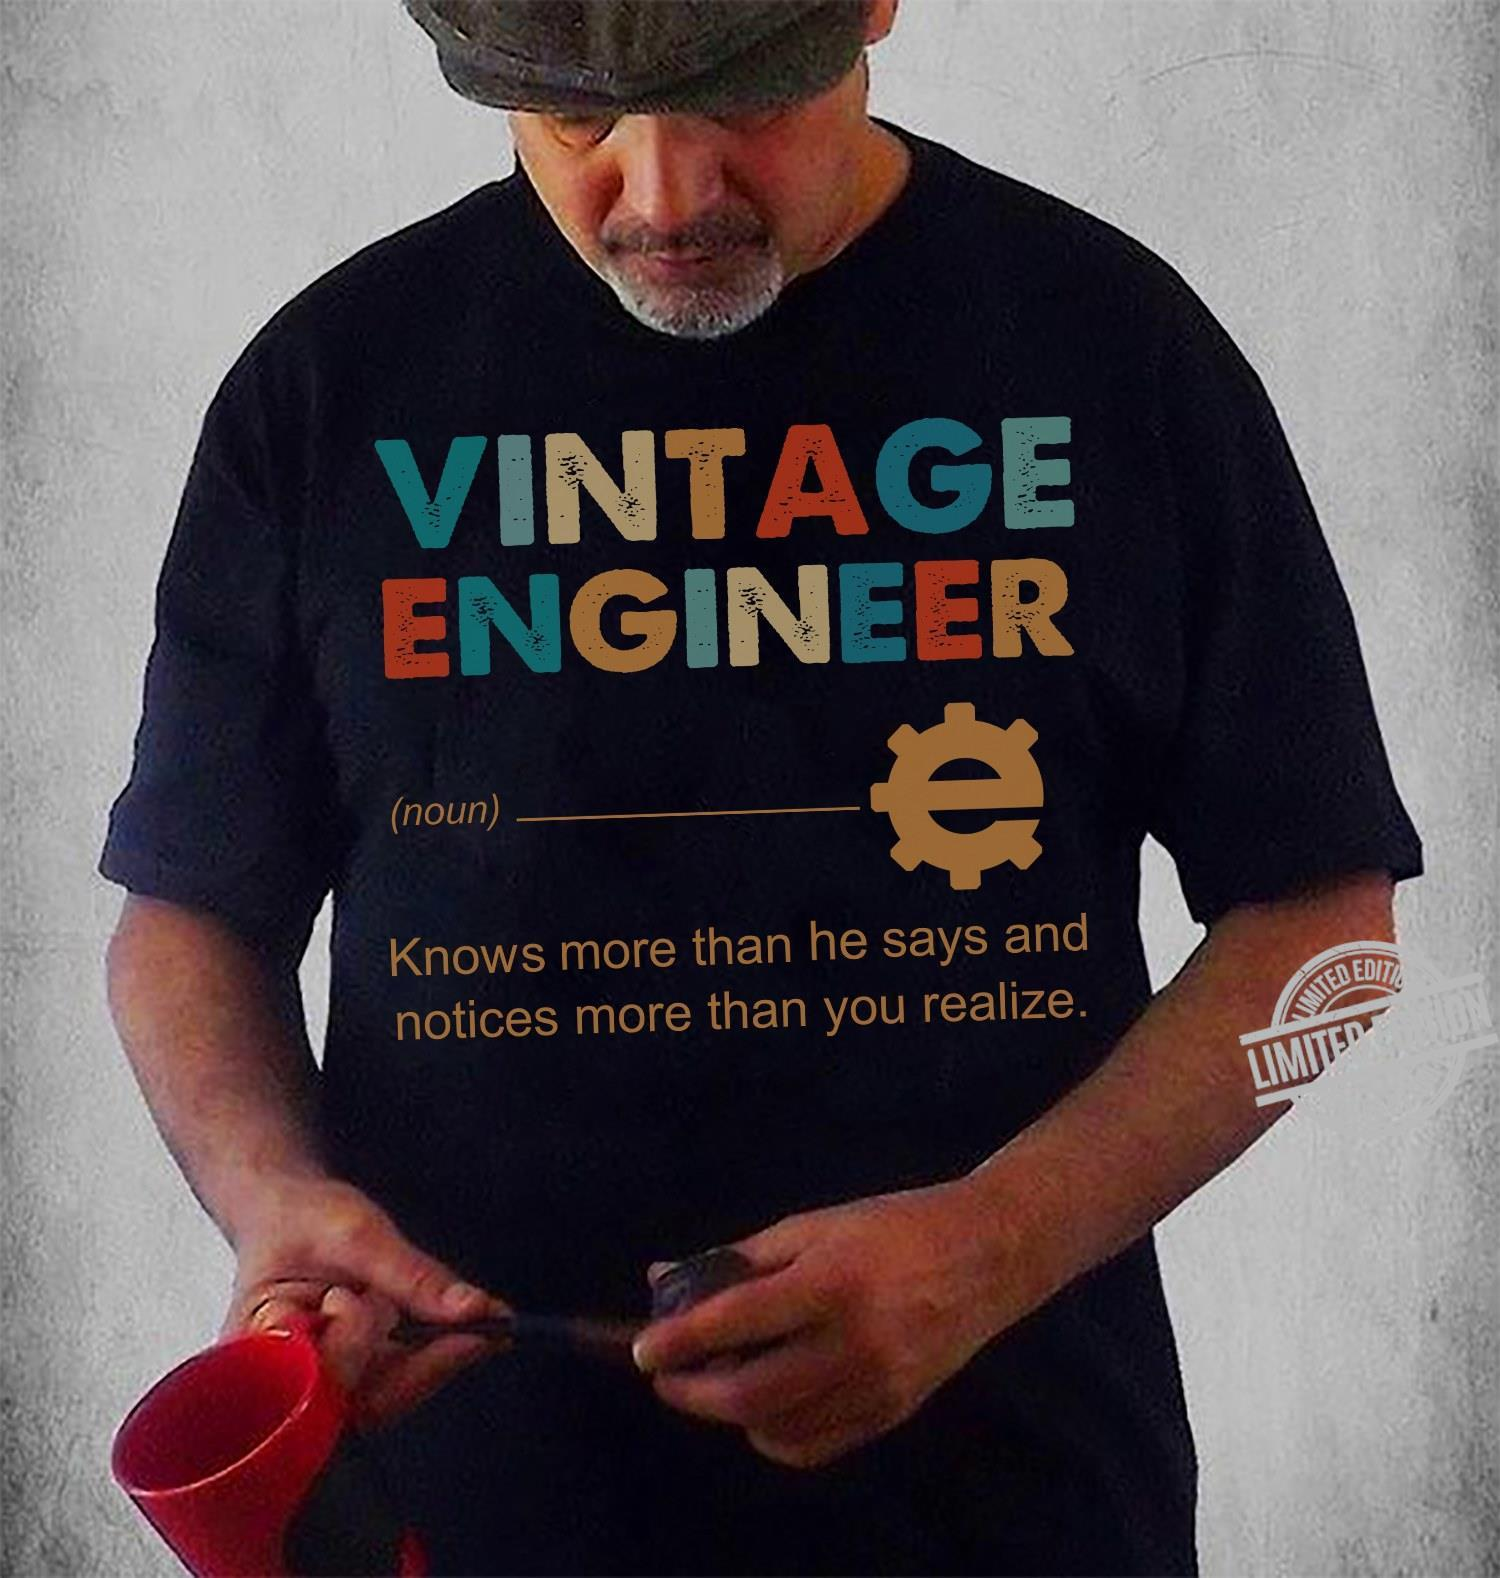 Vintage Engineer Knows More Than He Says And Notices More Than You Realize Shirt